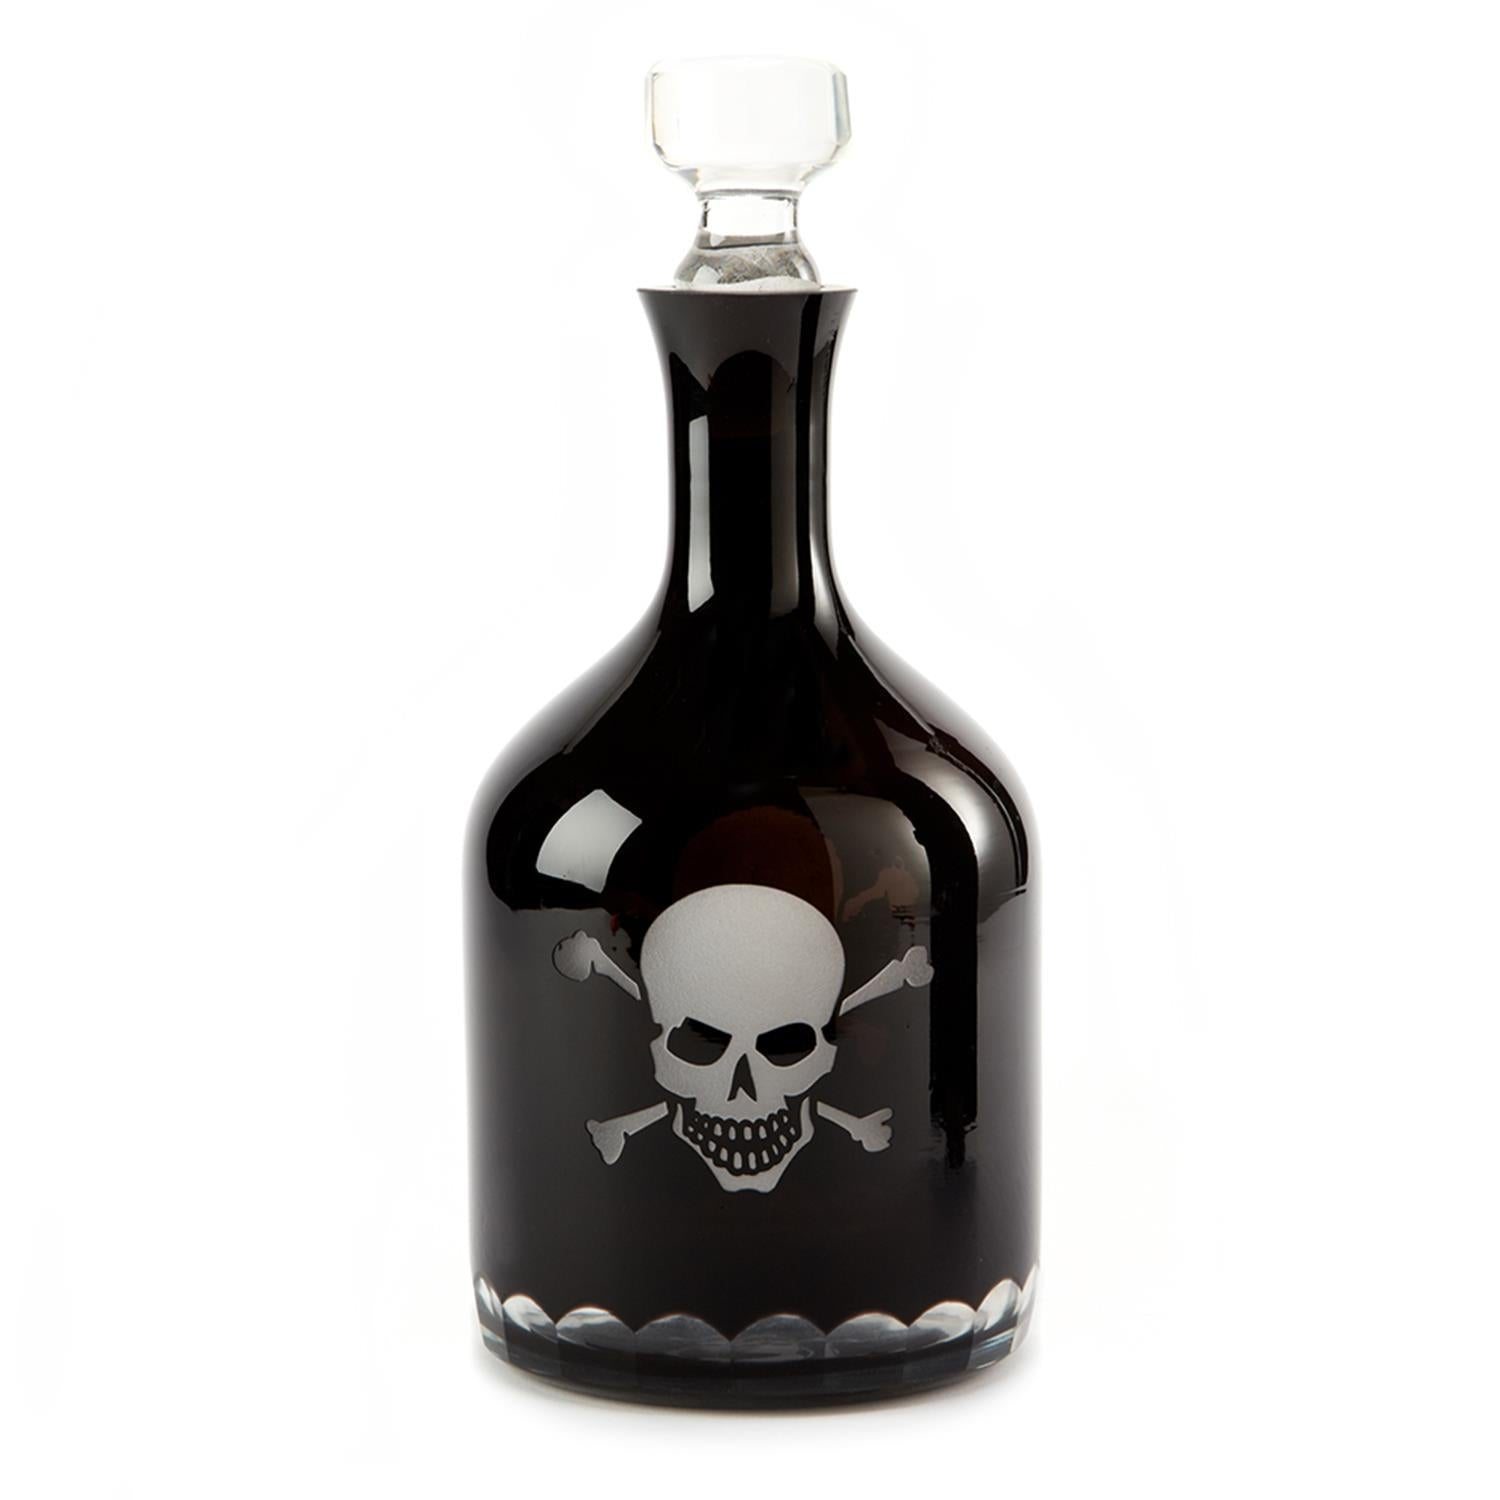 Skull & Crossbones Decanter